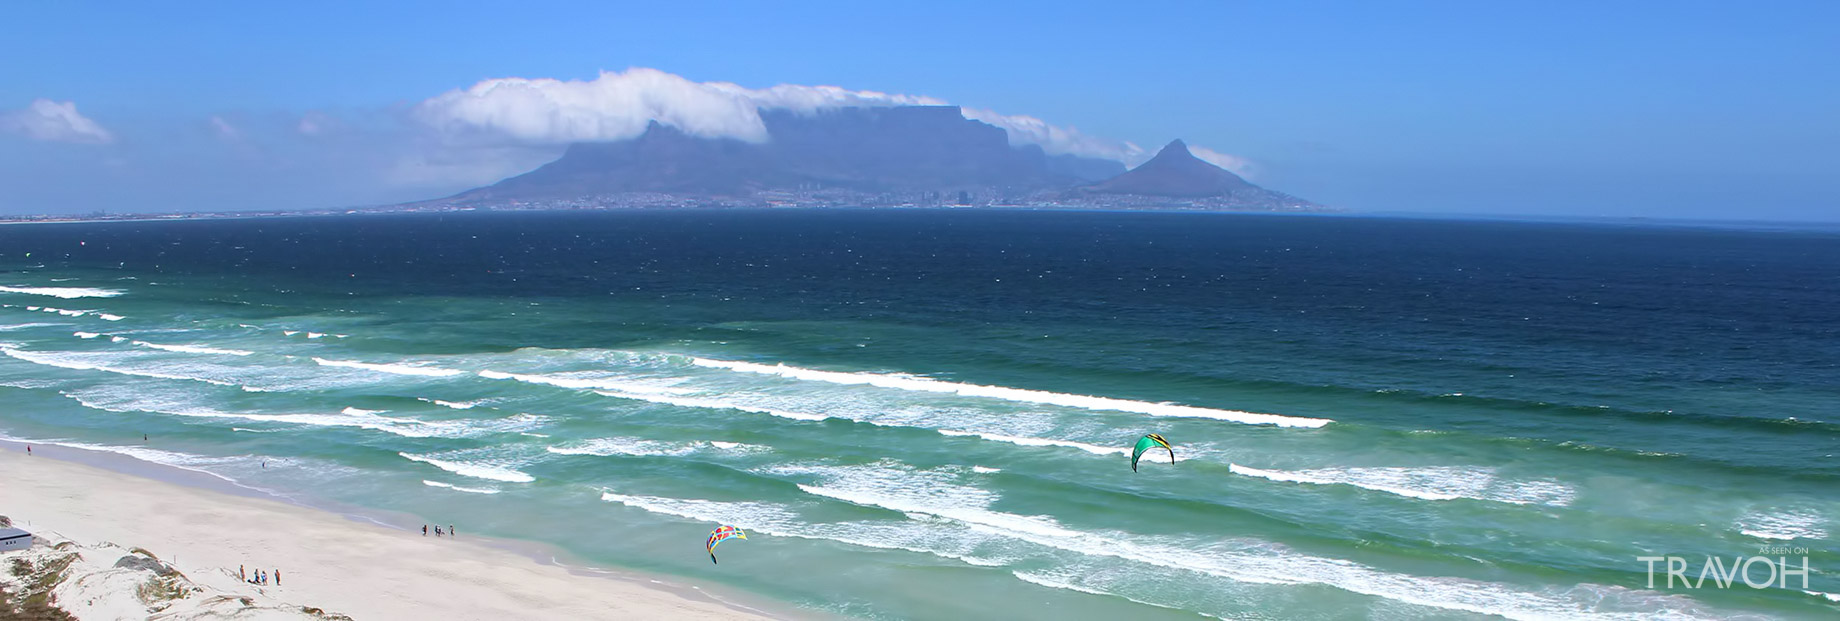 Bloubergstrand Beach - Exploring 10 of the Top Beaches in Cape Town South Africa